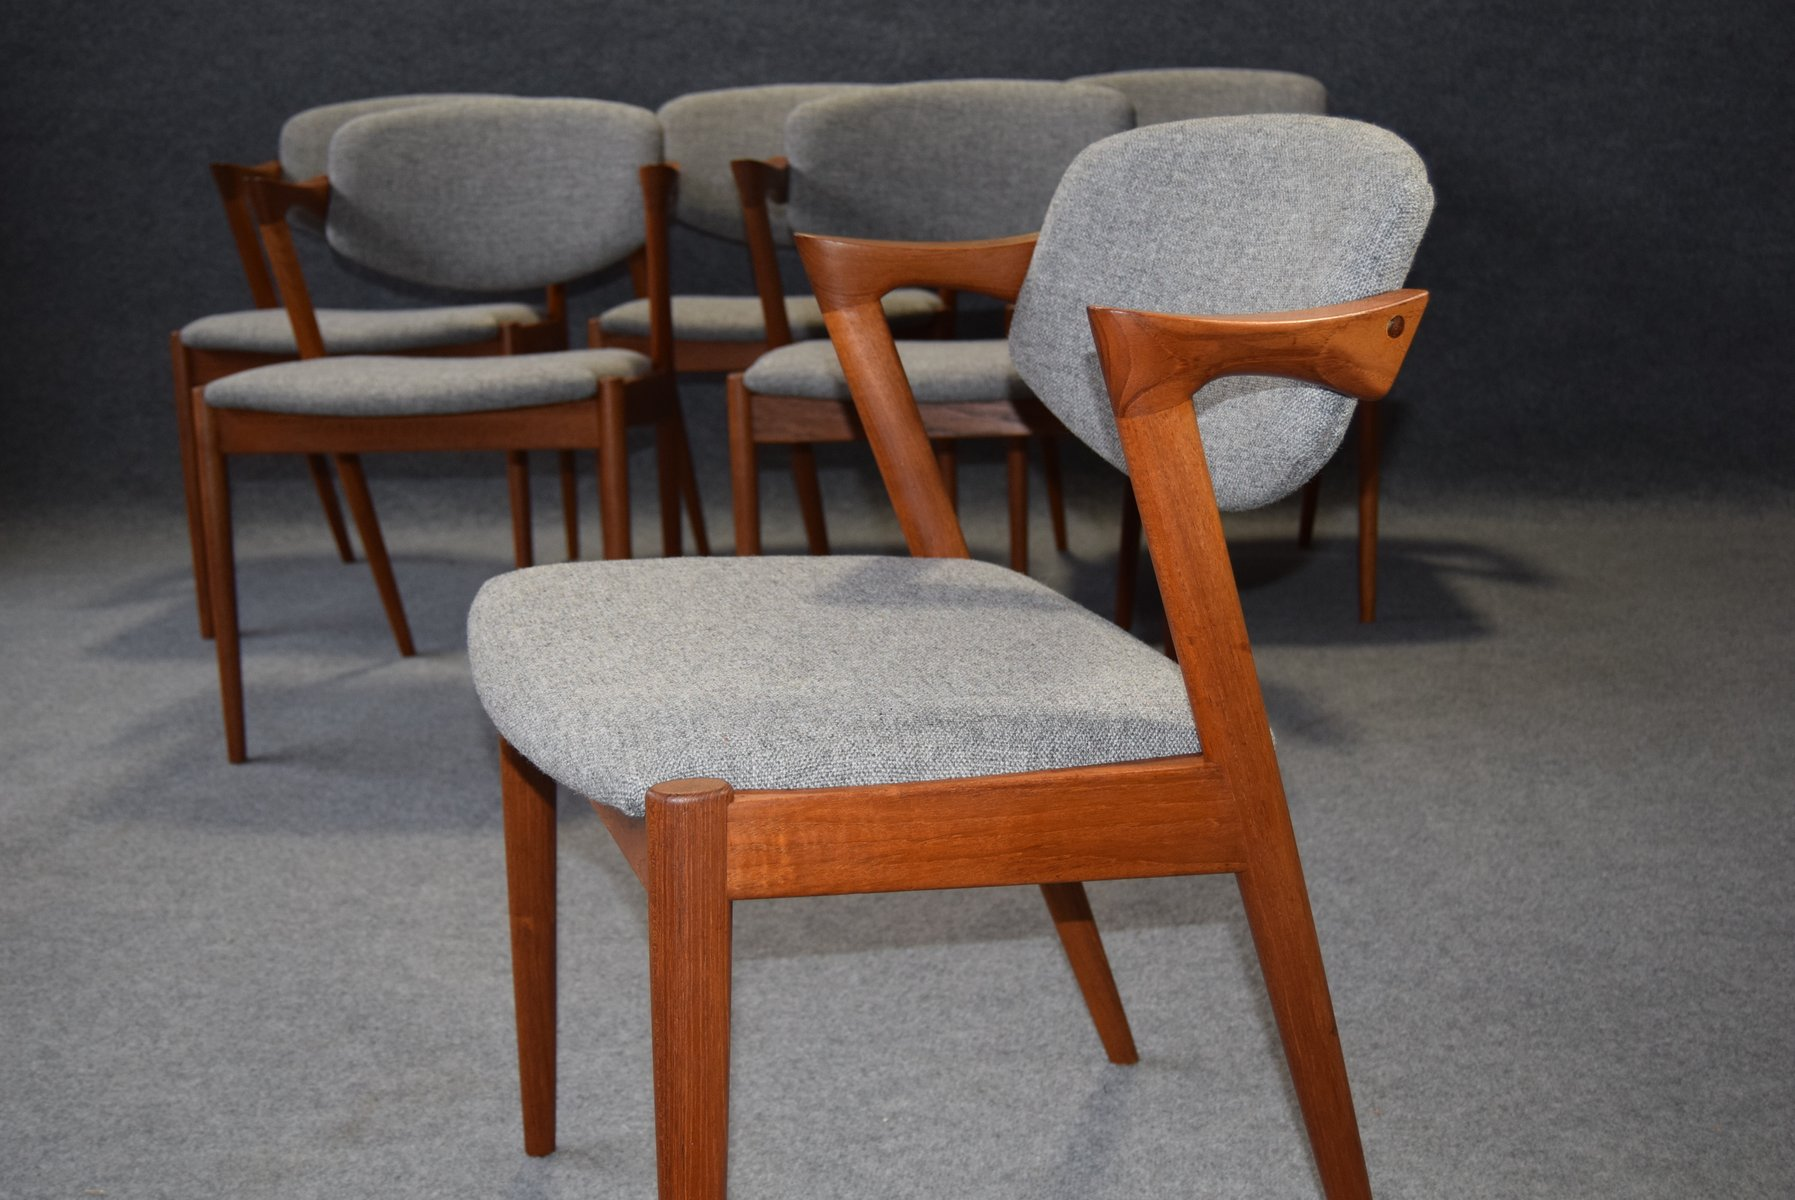 Mid century model 32 dining chairs by kai kristiansen for schou andersen set of 6 for sale at - Kai kristiansen chairs ...